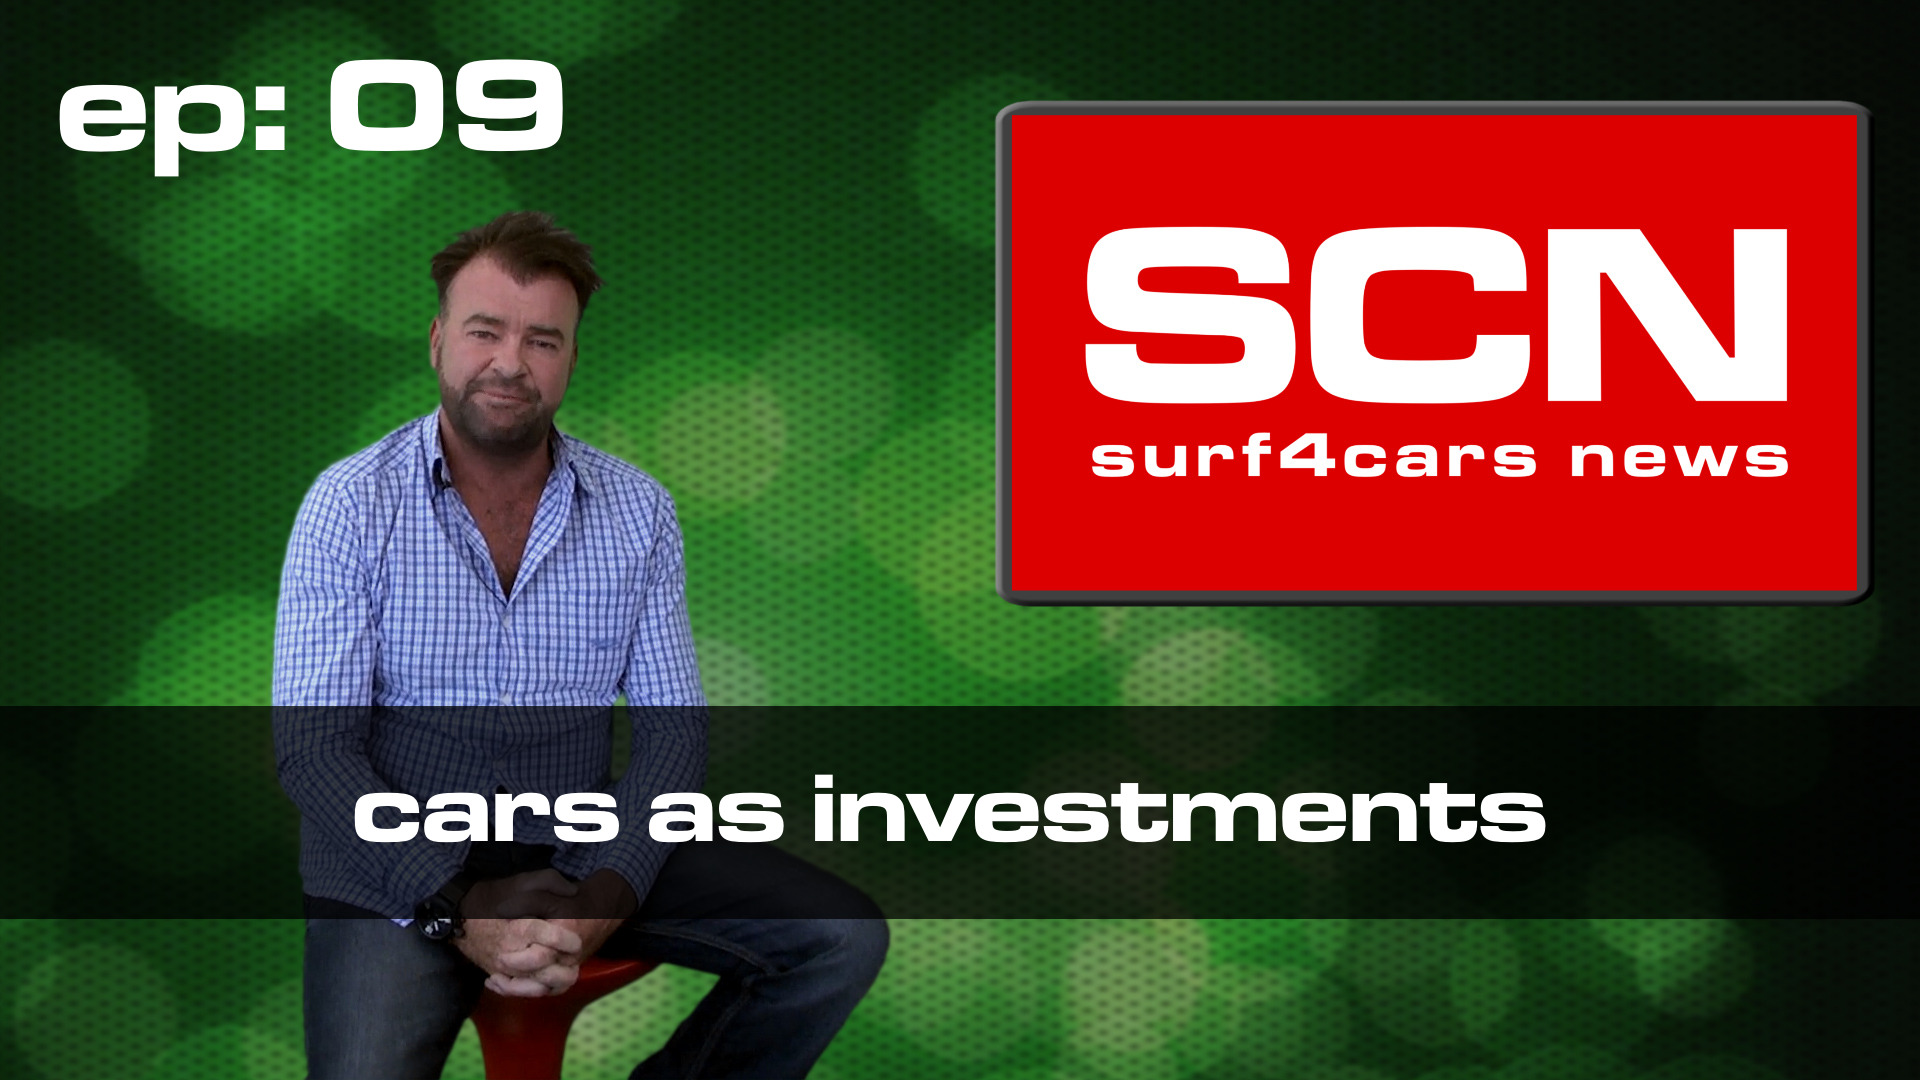 Surf4cars News ep.09 – Cars as Investments